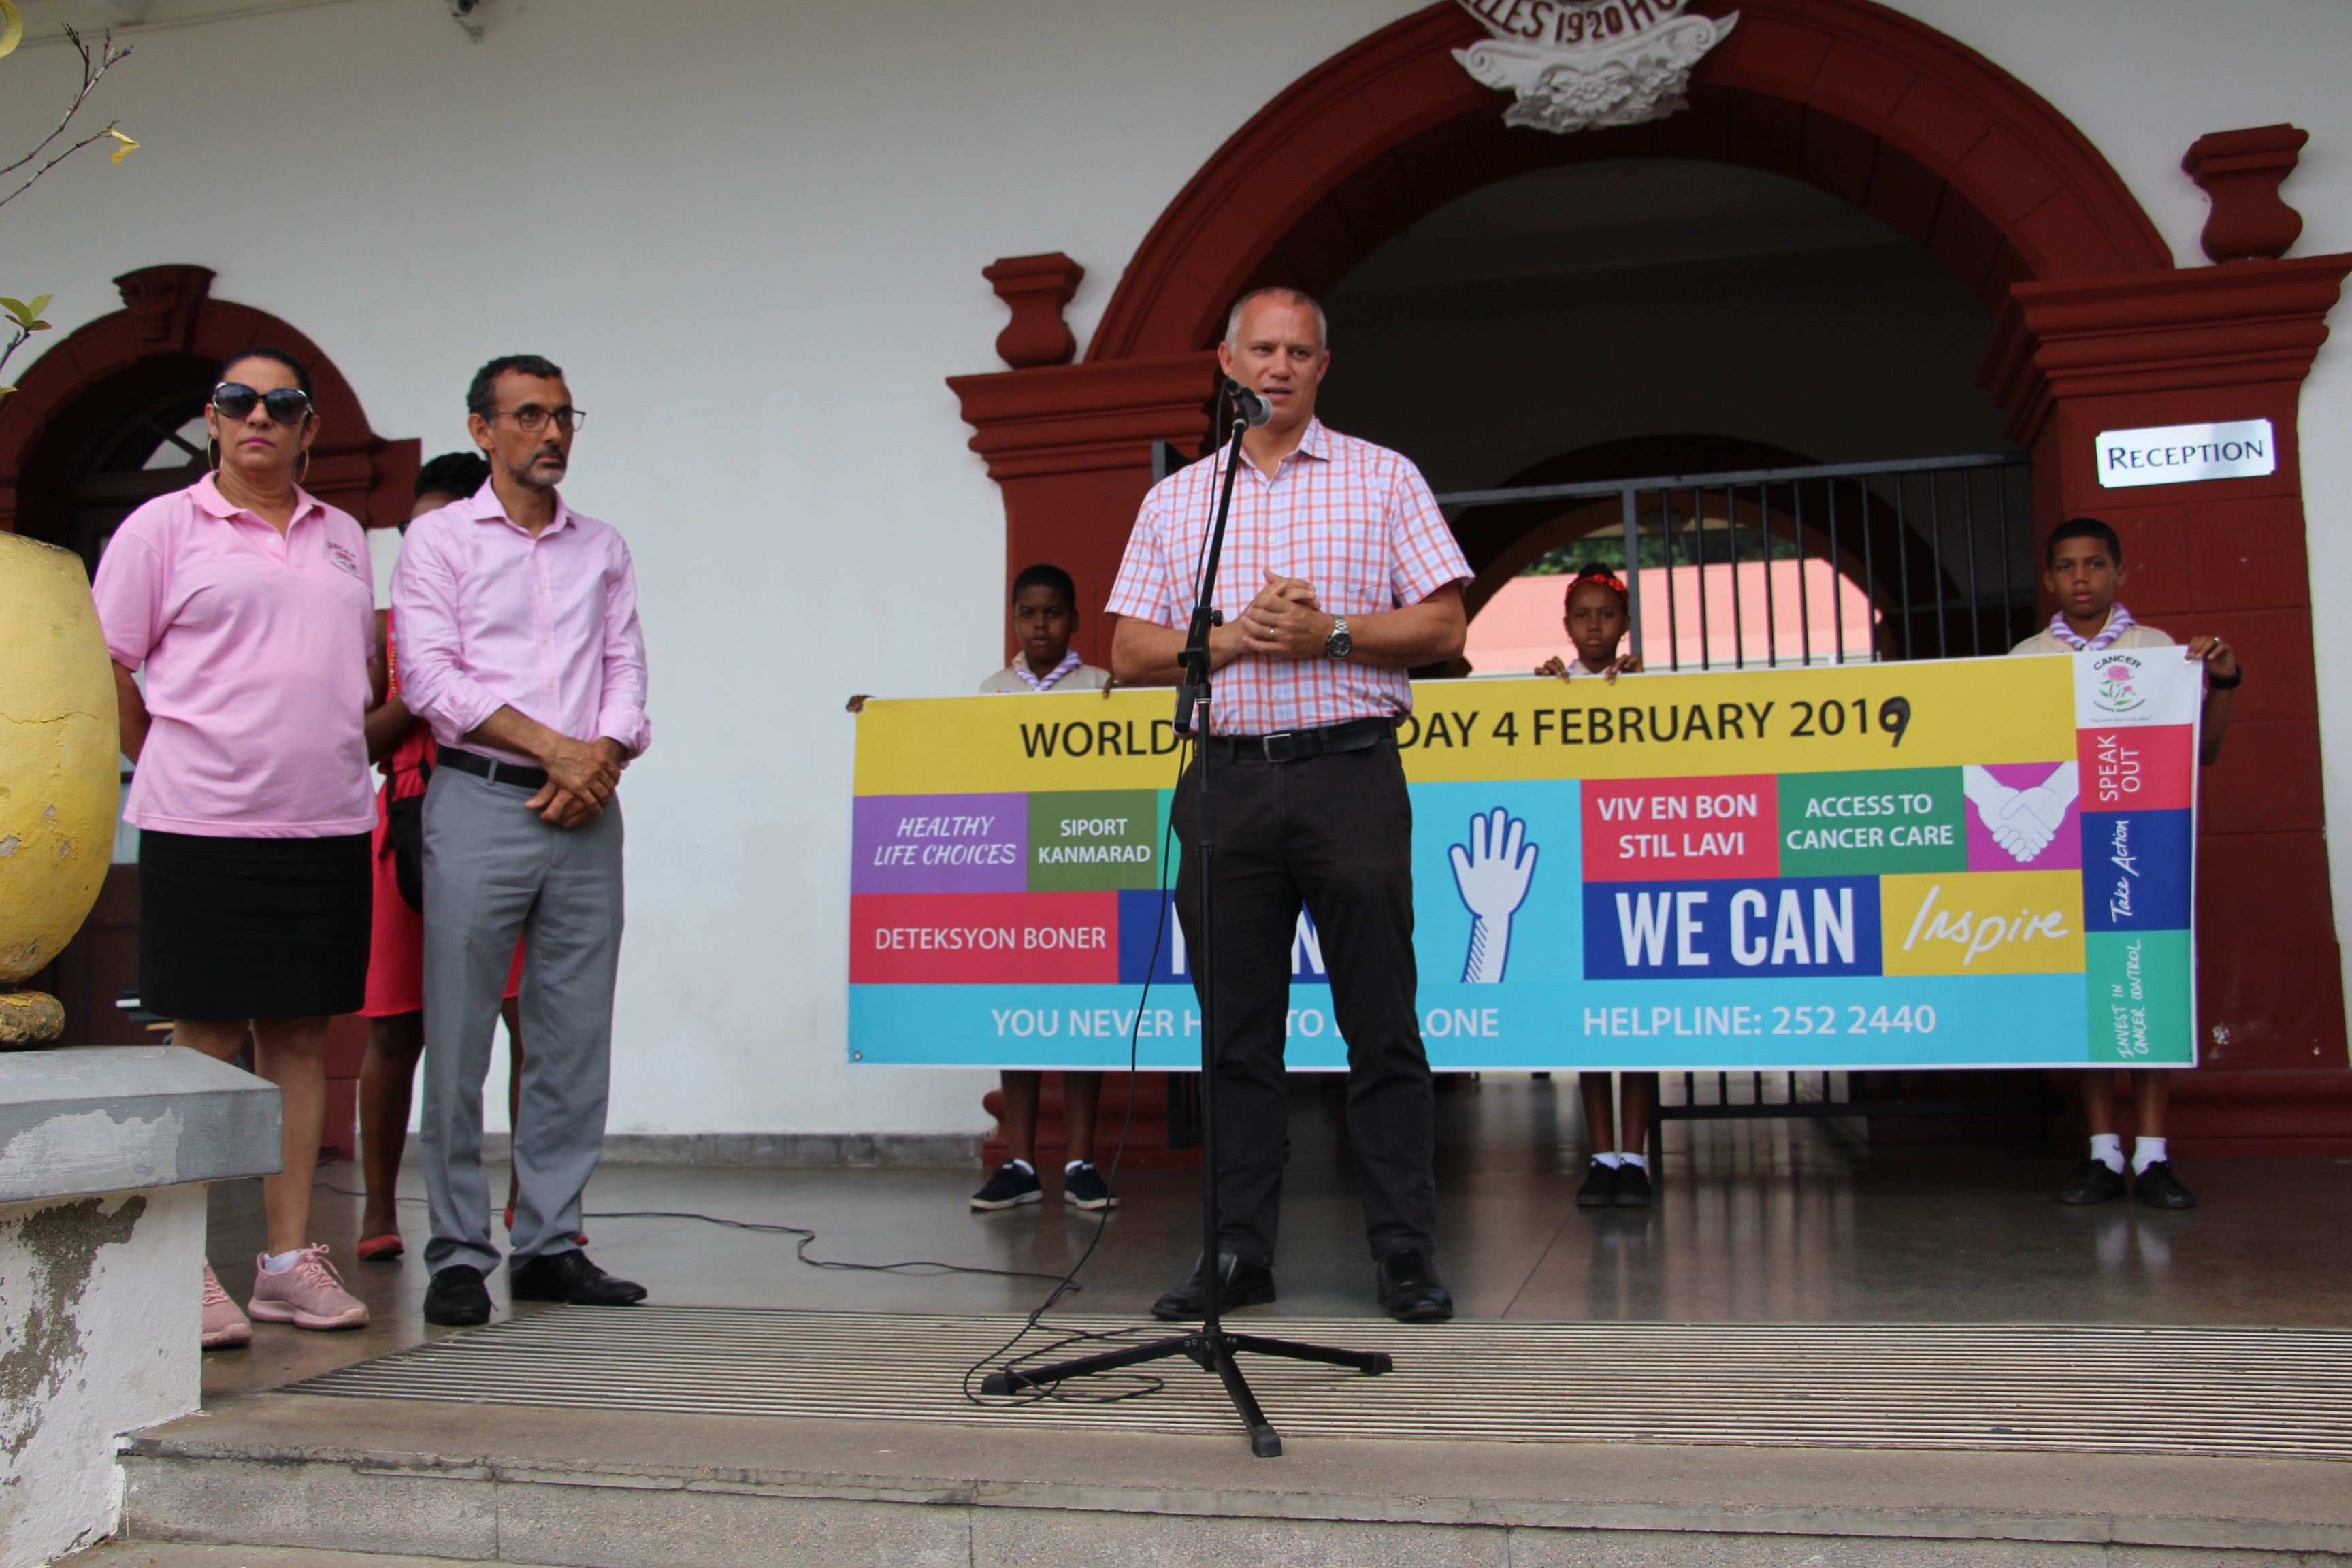 WORLD CANCER DAY 2019 - Ministry of Health